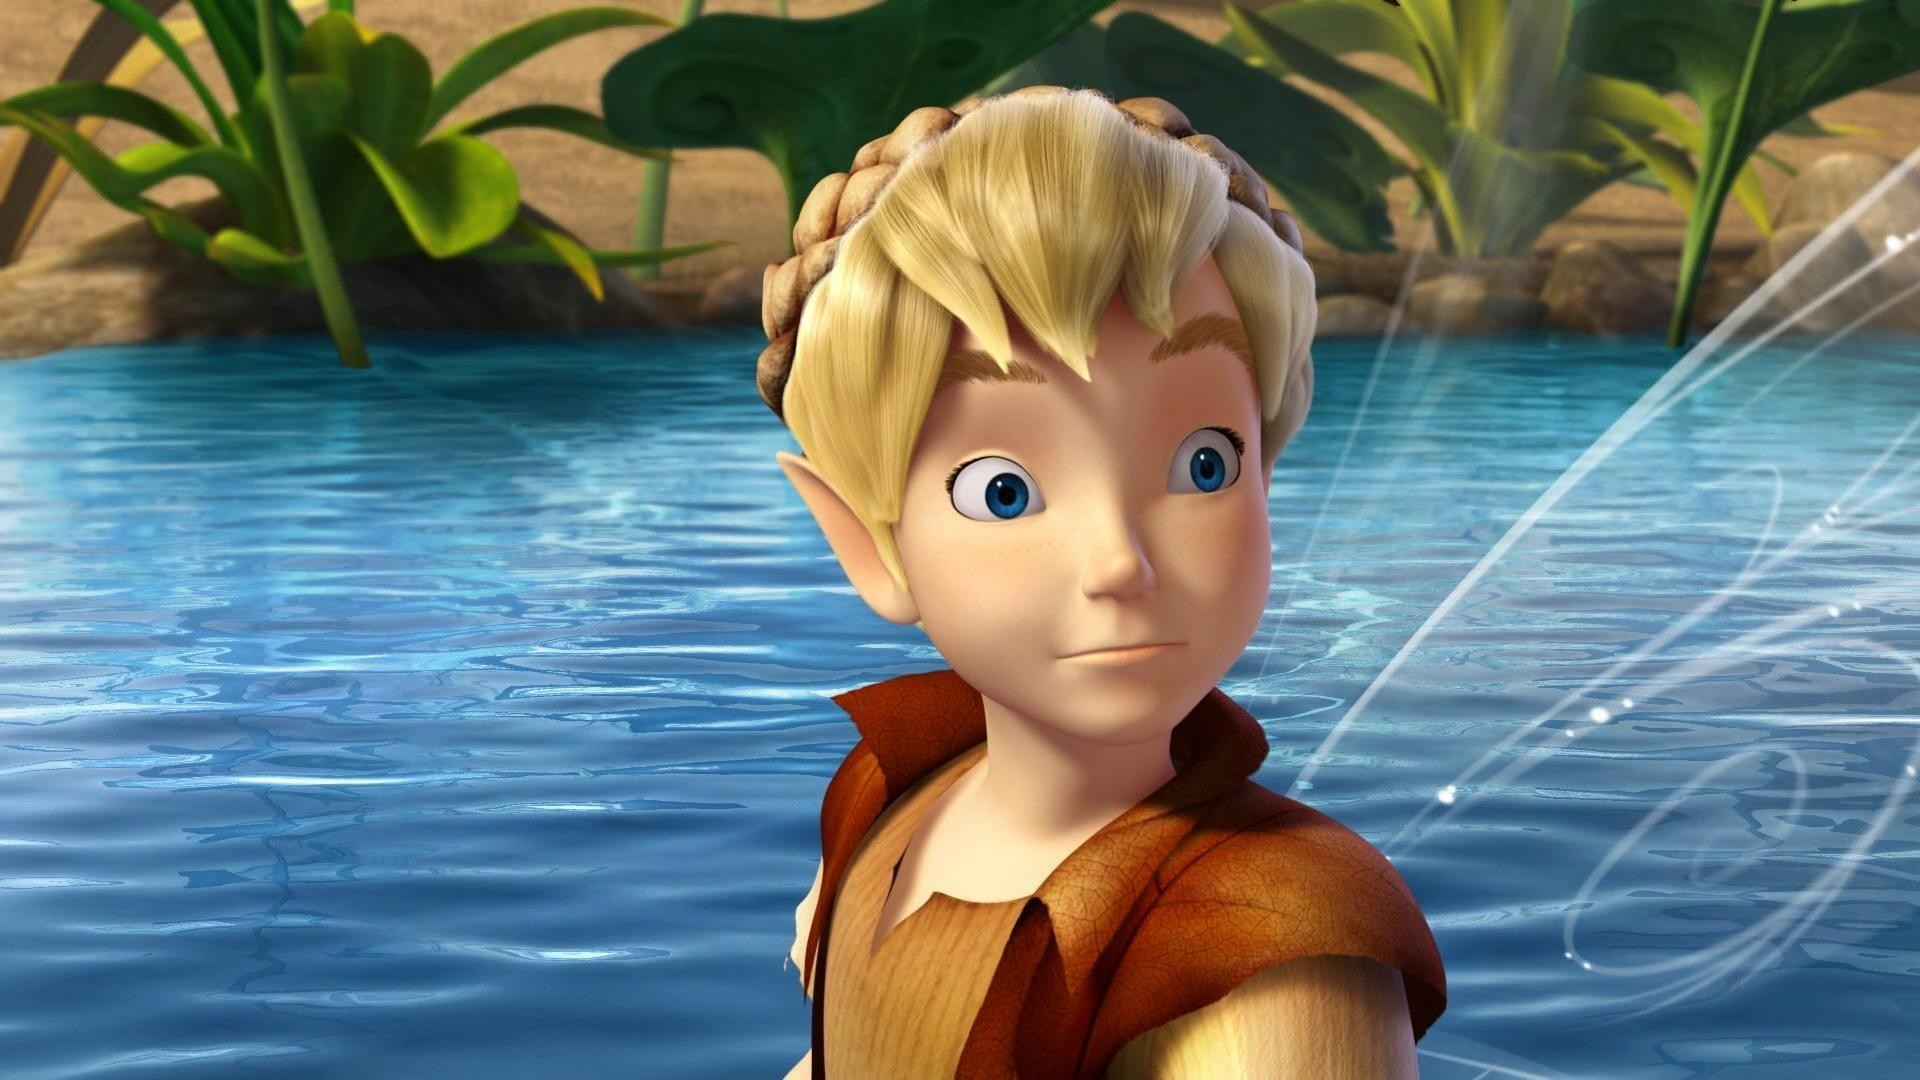 Res: 1920x1080, Tinker Bell and the Lost Treasure Wallpapers 22 - 1920 X 1080